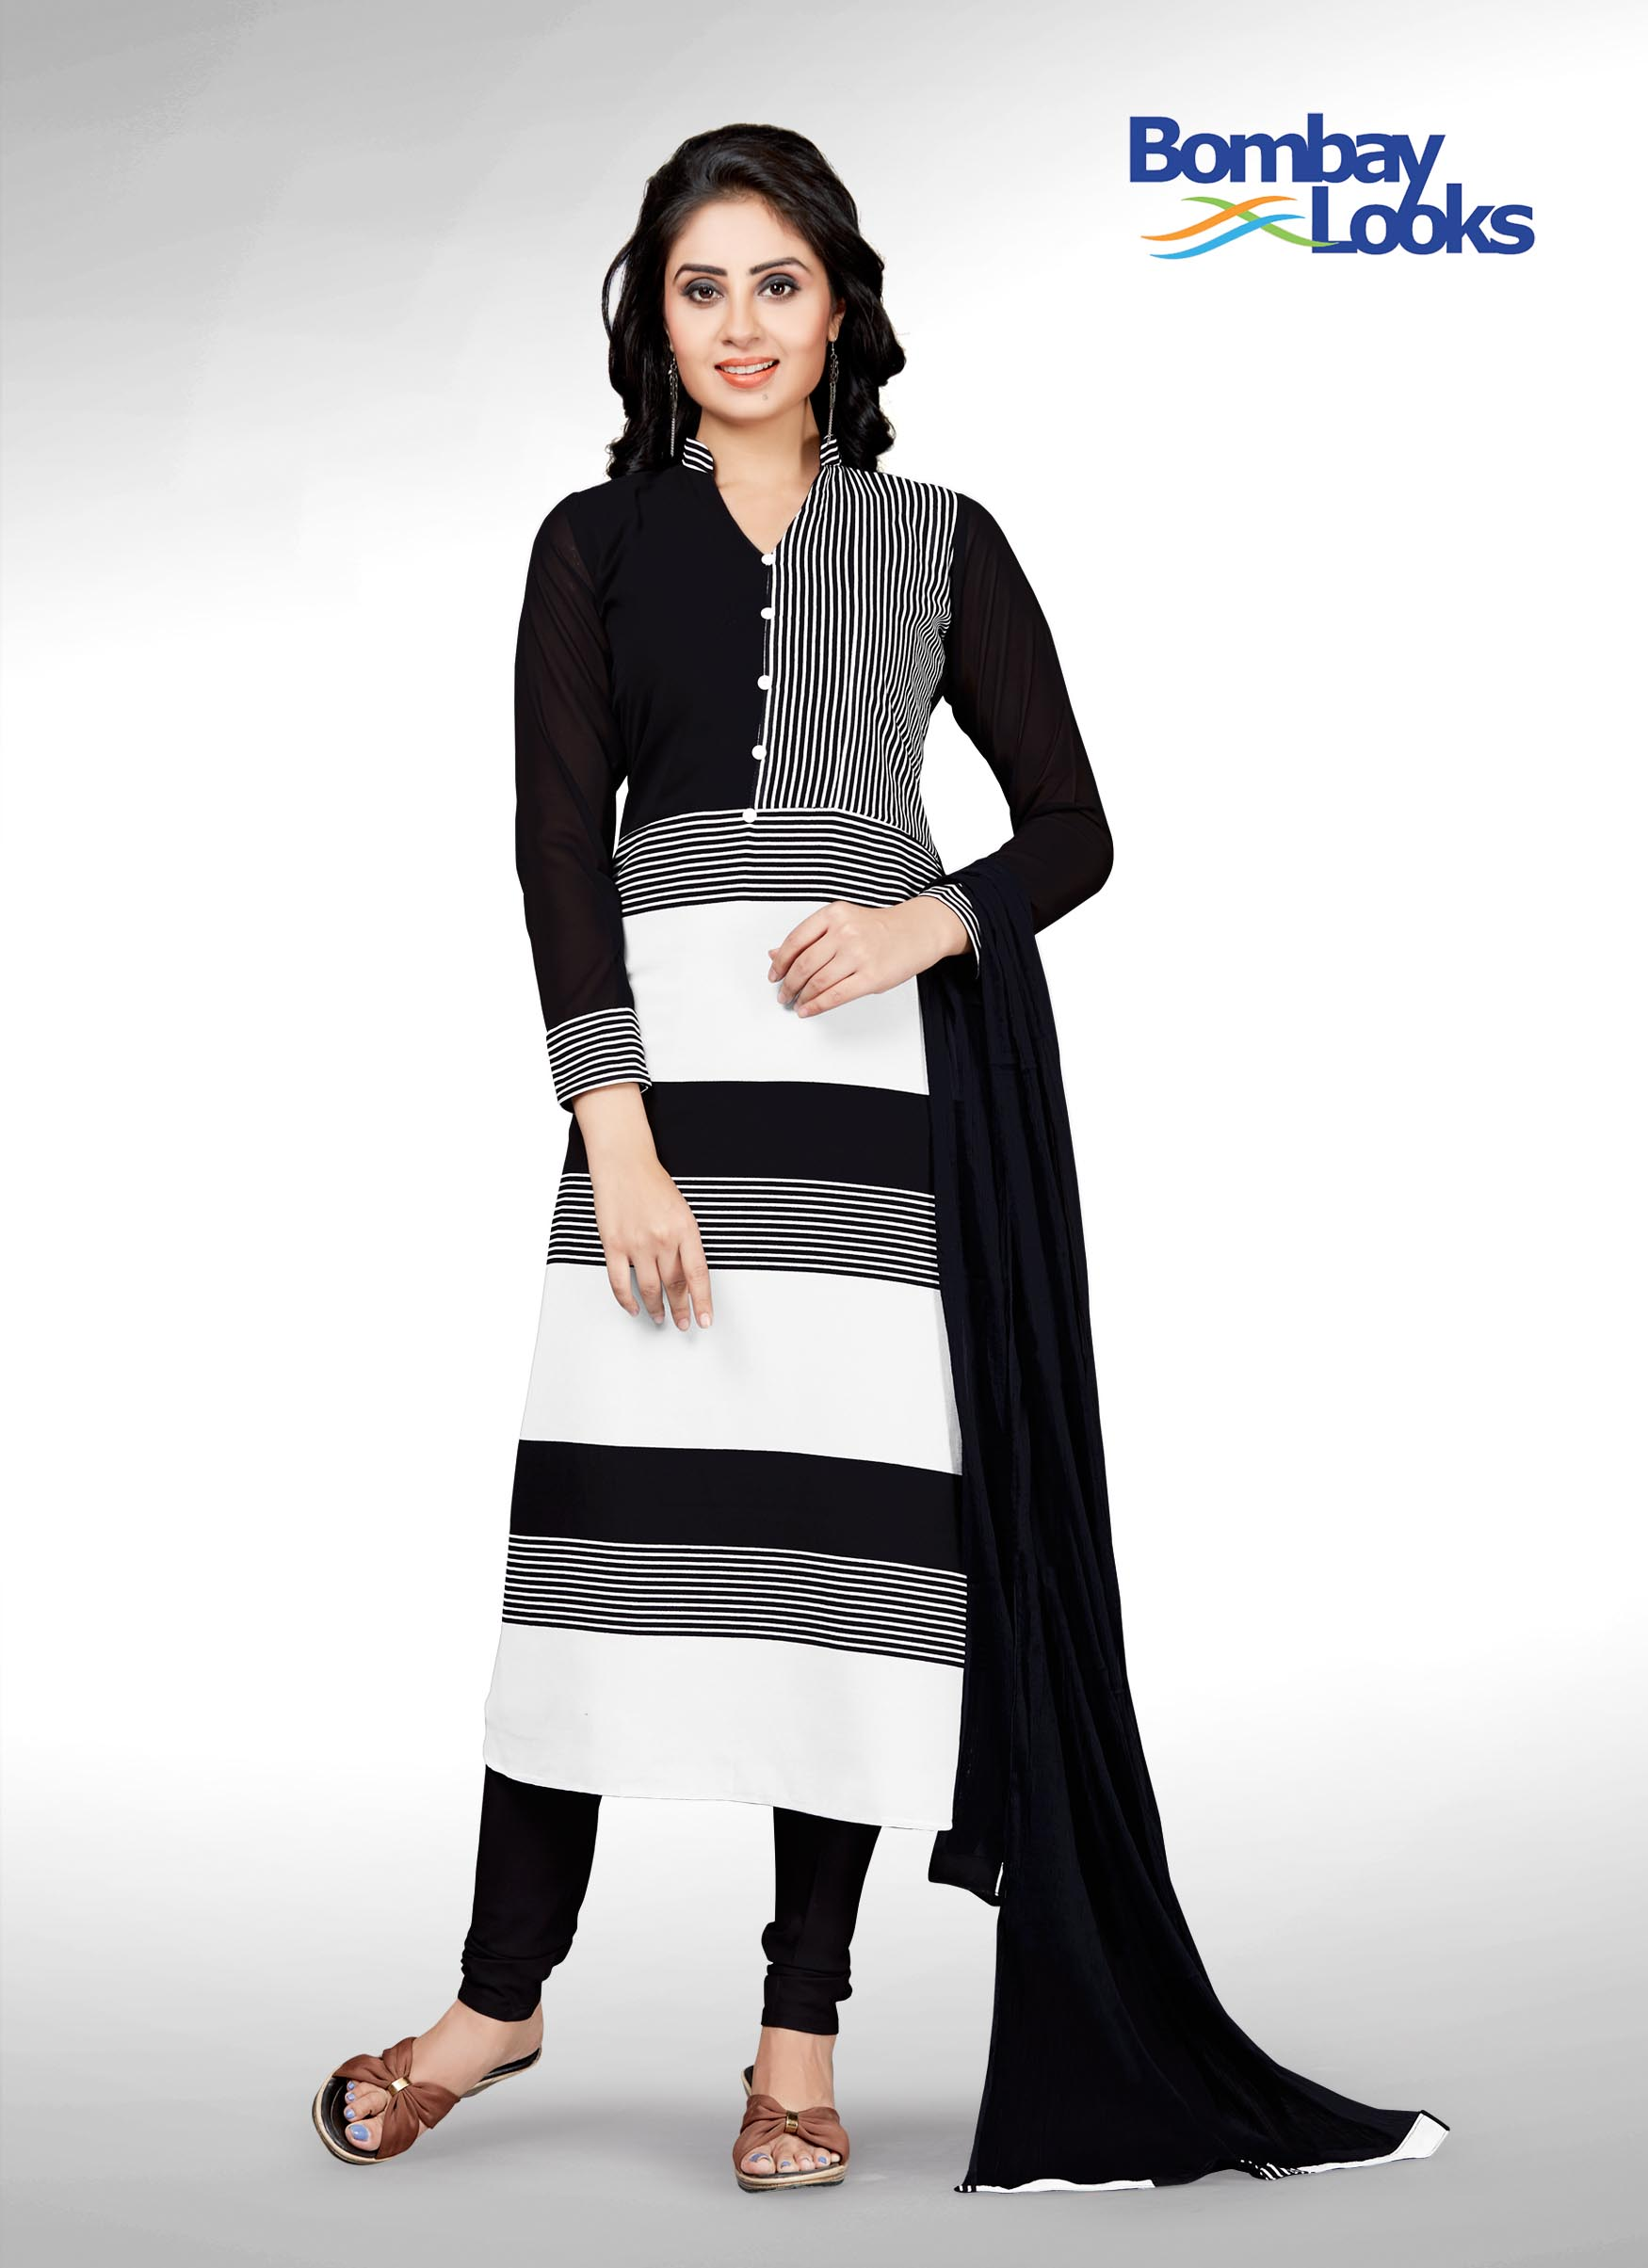 Monochrome black and white churidar set with full net sleeves